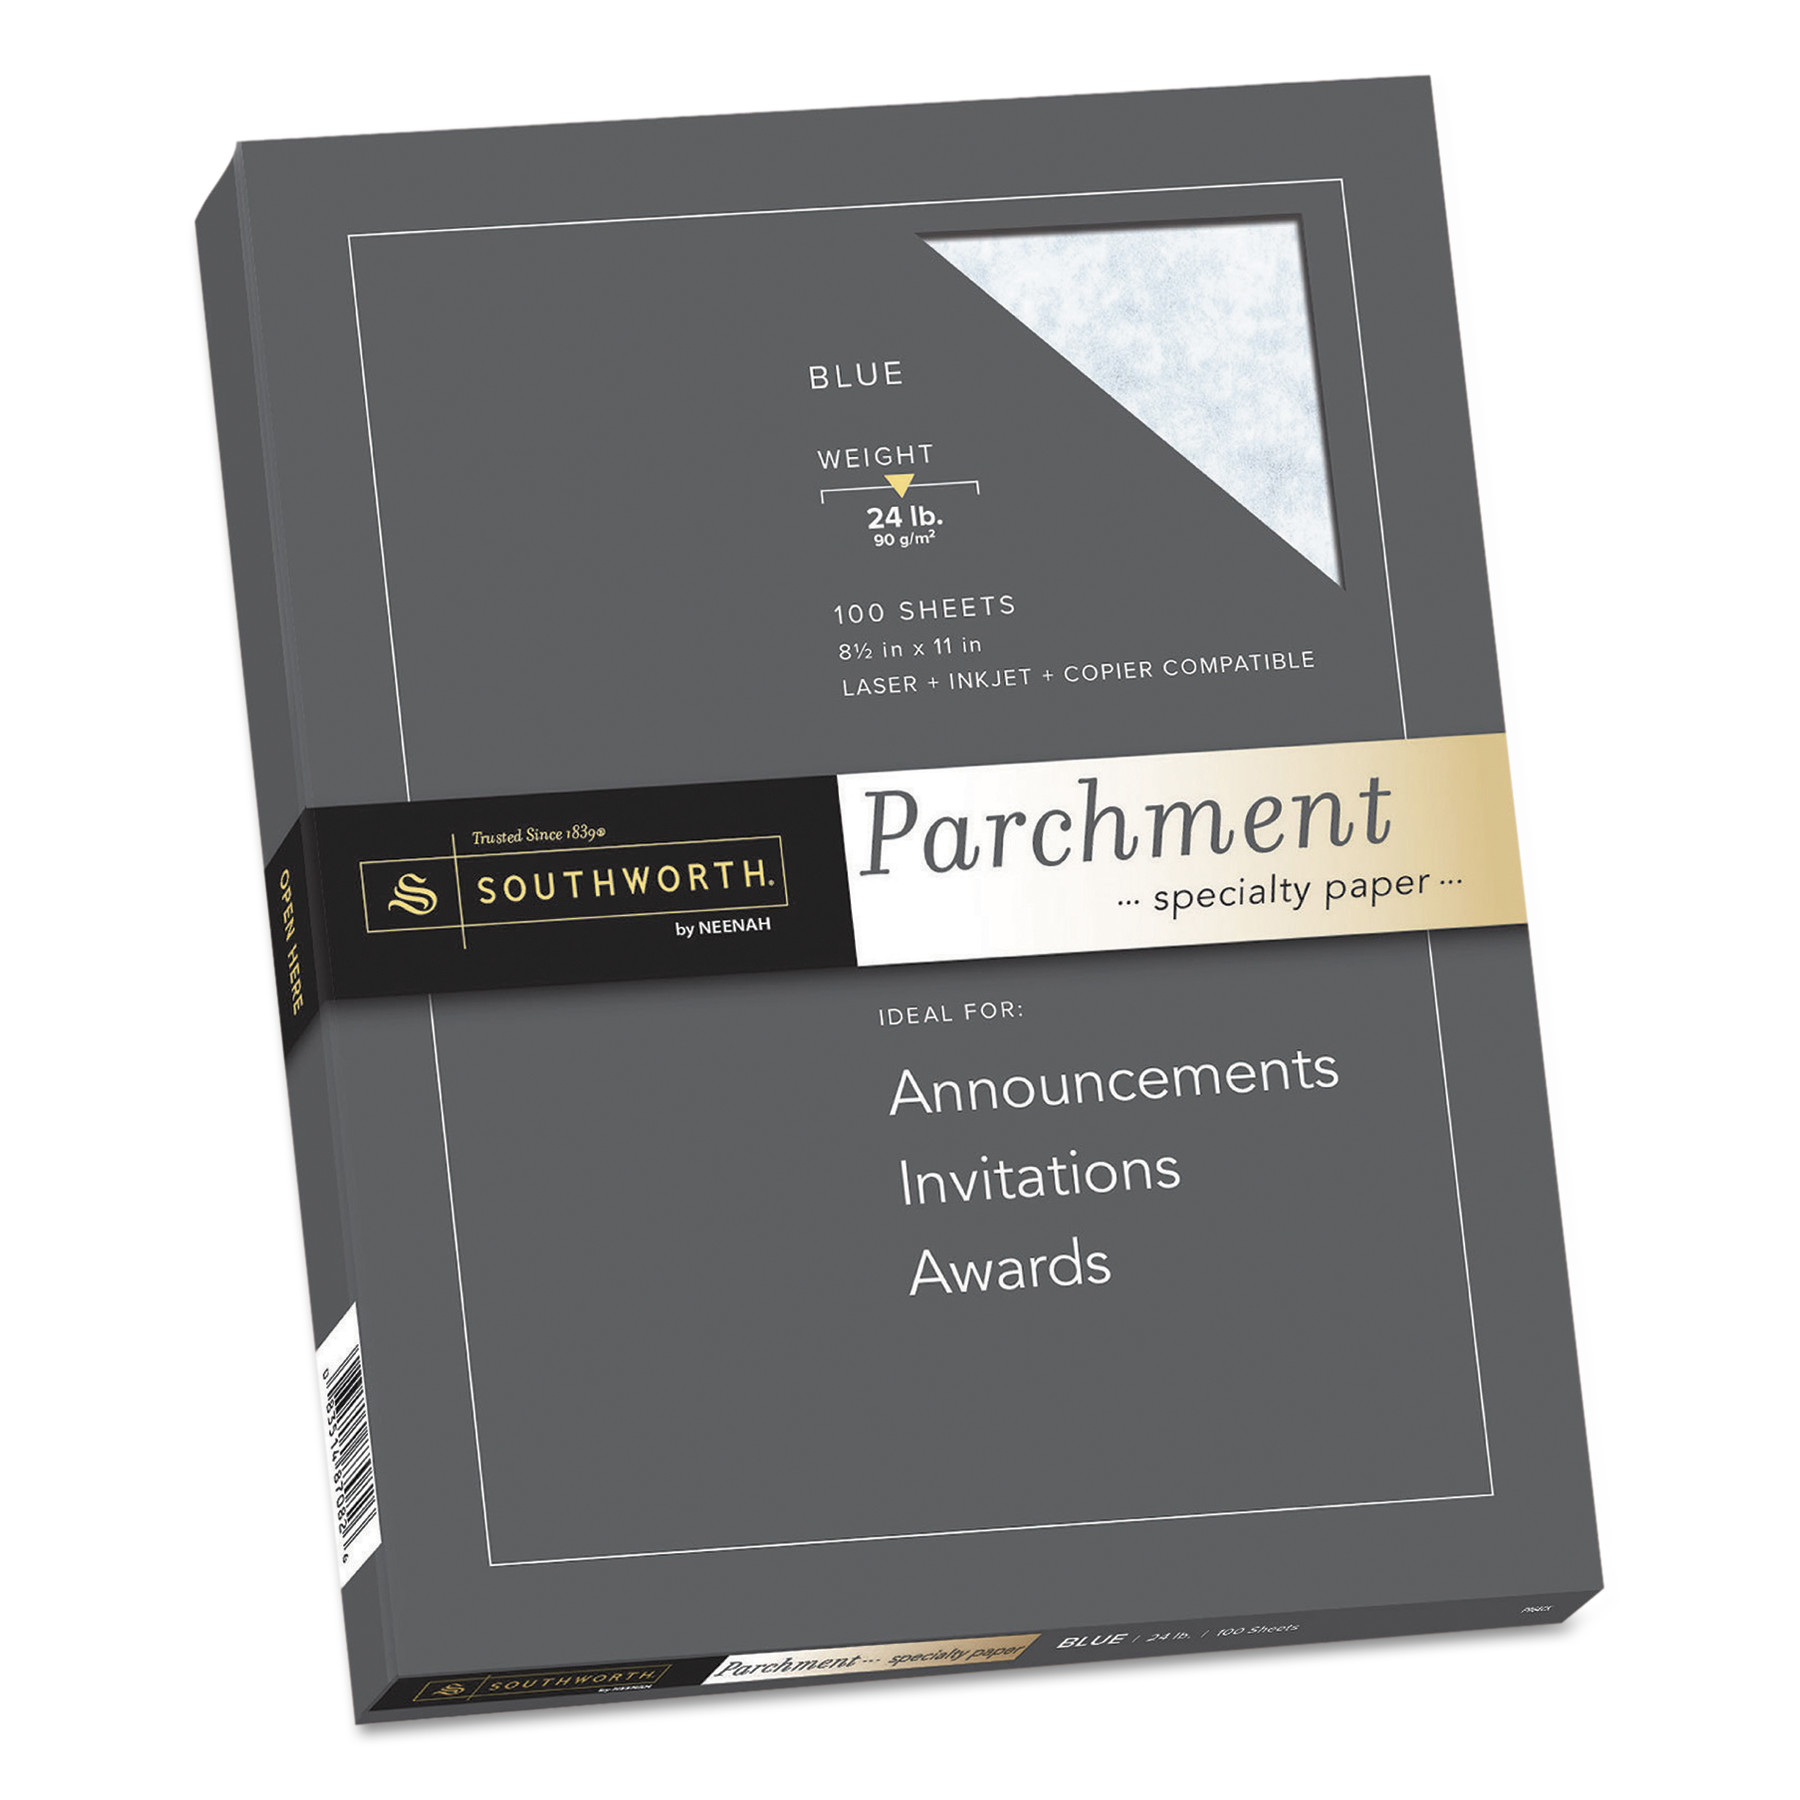 Southworth Parchment Specialty Paper, Blue, 24lb, 8 1/2 x 11, 100 Sheets -SOUP964CK336